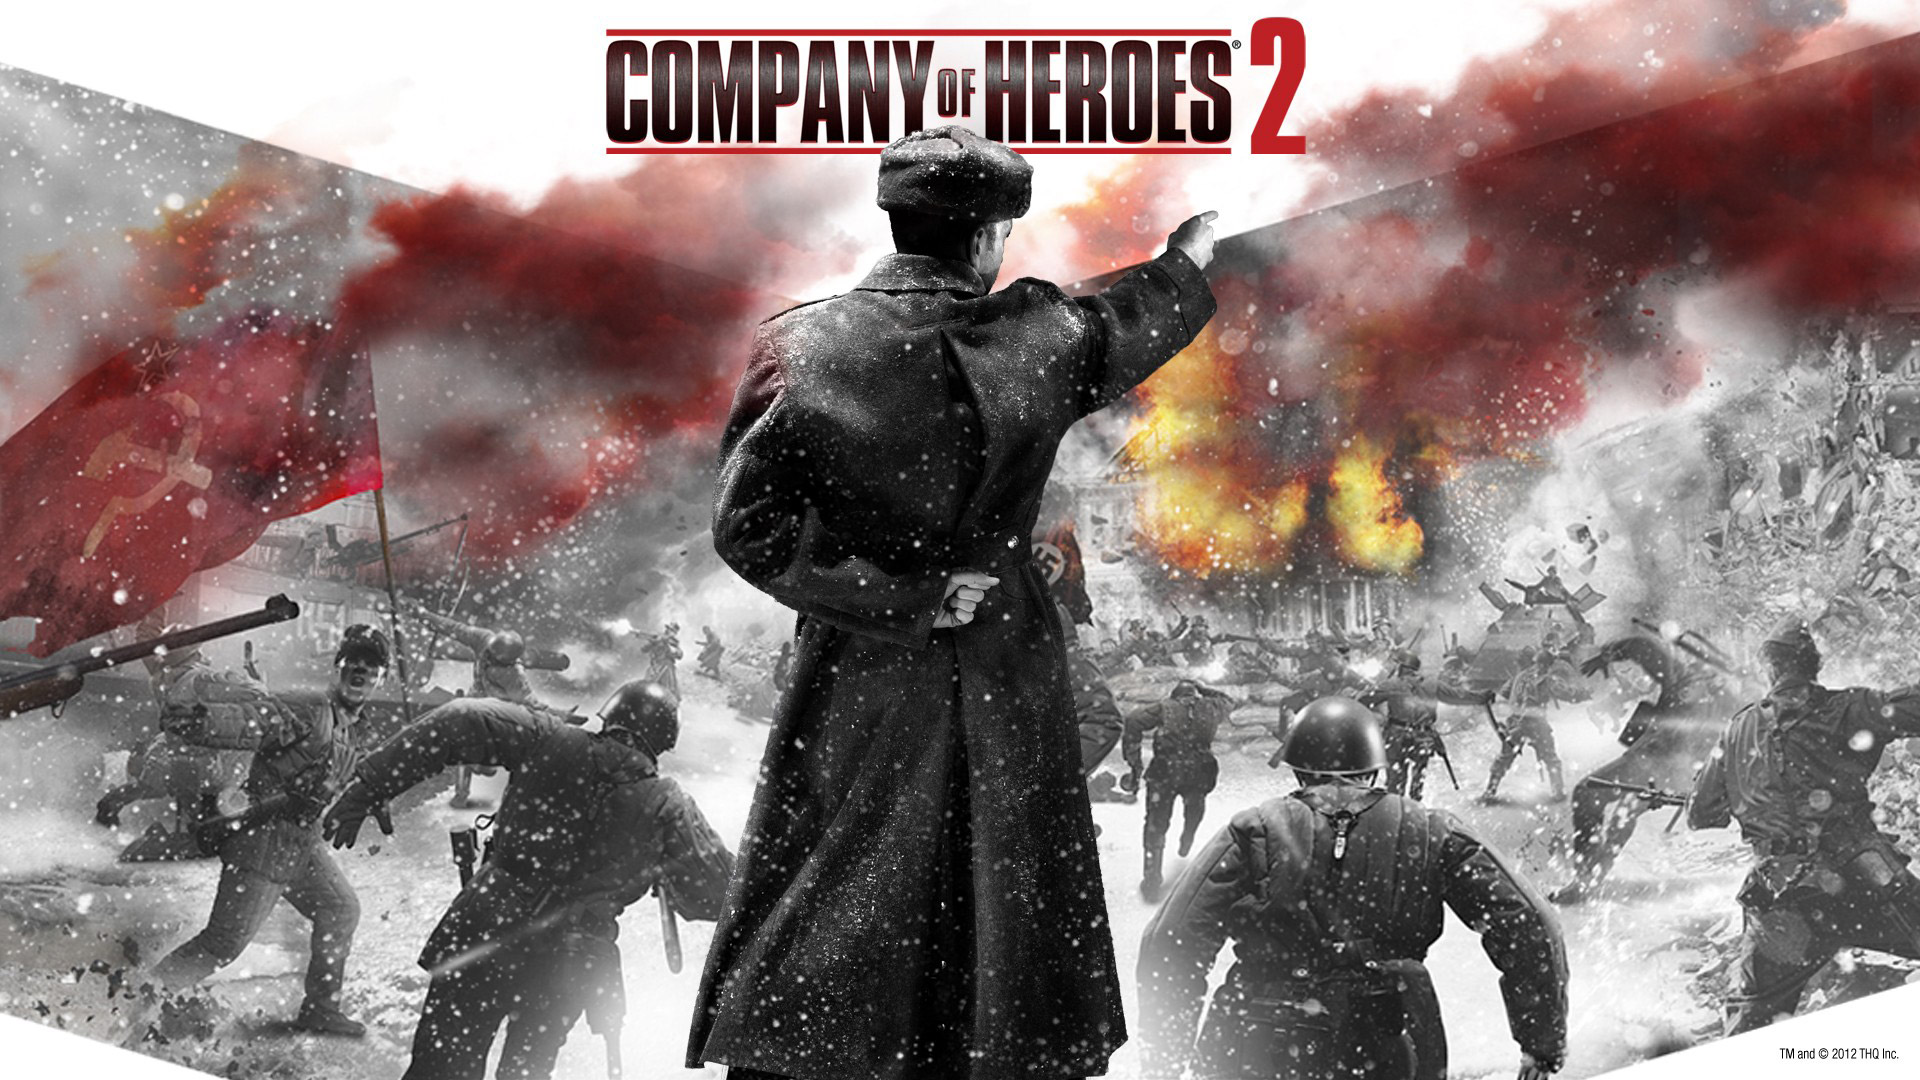 Free Company of Heroes 2 Wallpaper in 1920x1080